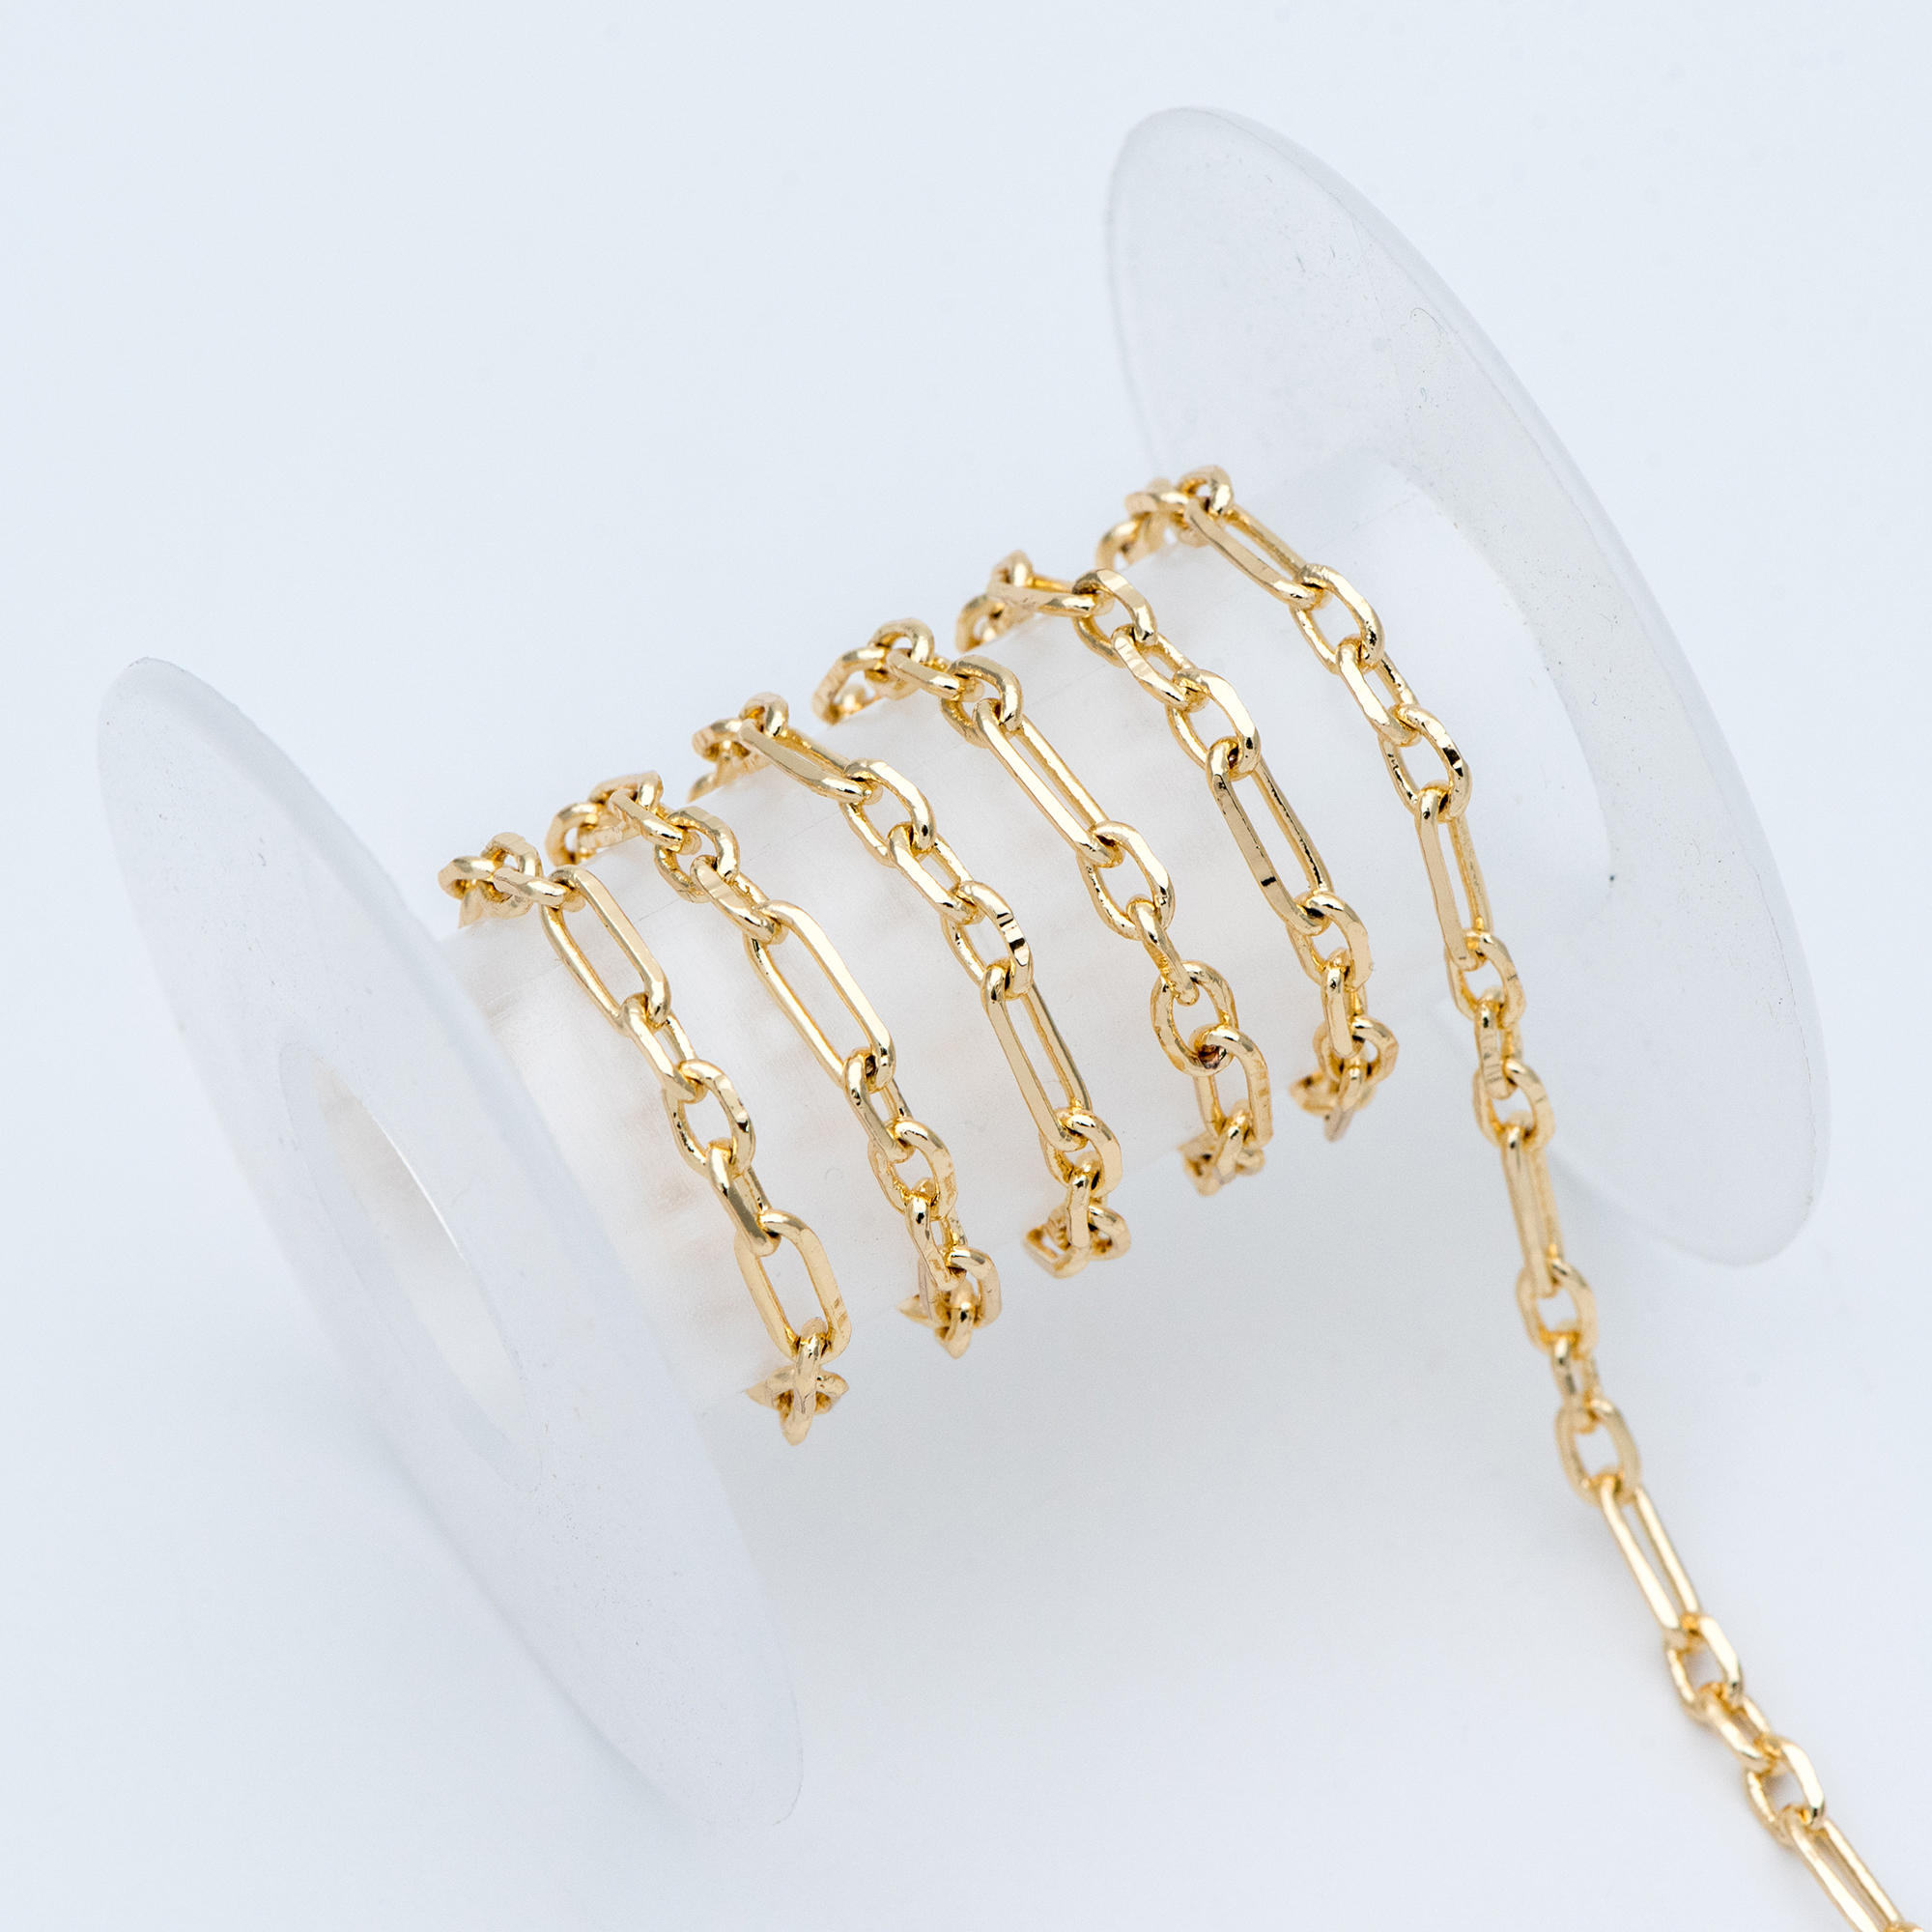 Gold Oval Link Chains 3.6mm, 18K Gold Plated Brass, Color Not Easily Tarnish (#LK-275)/ 1 Meter=3.3 Ft